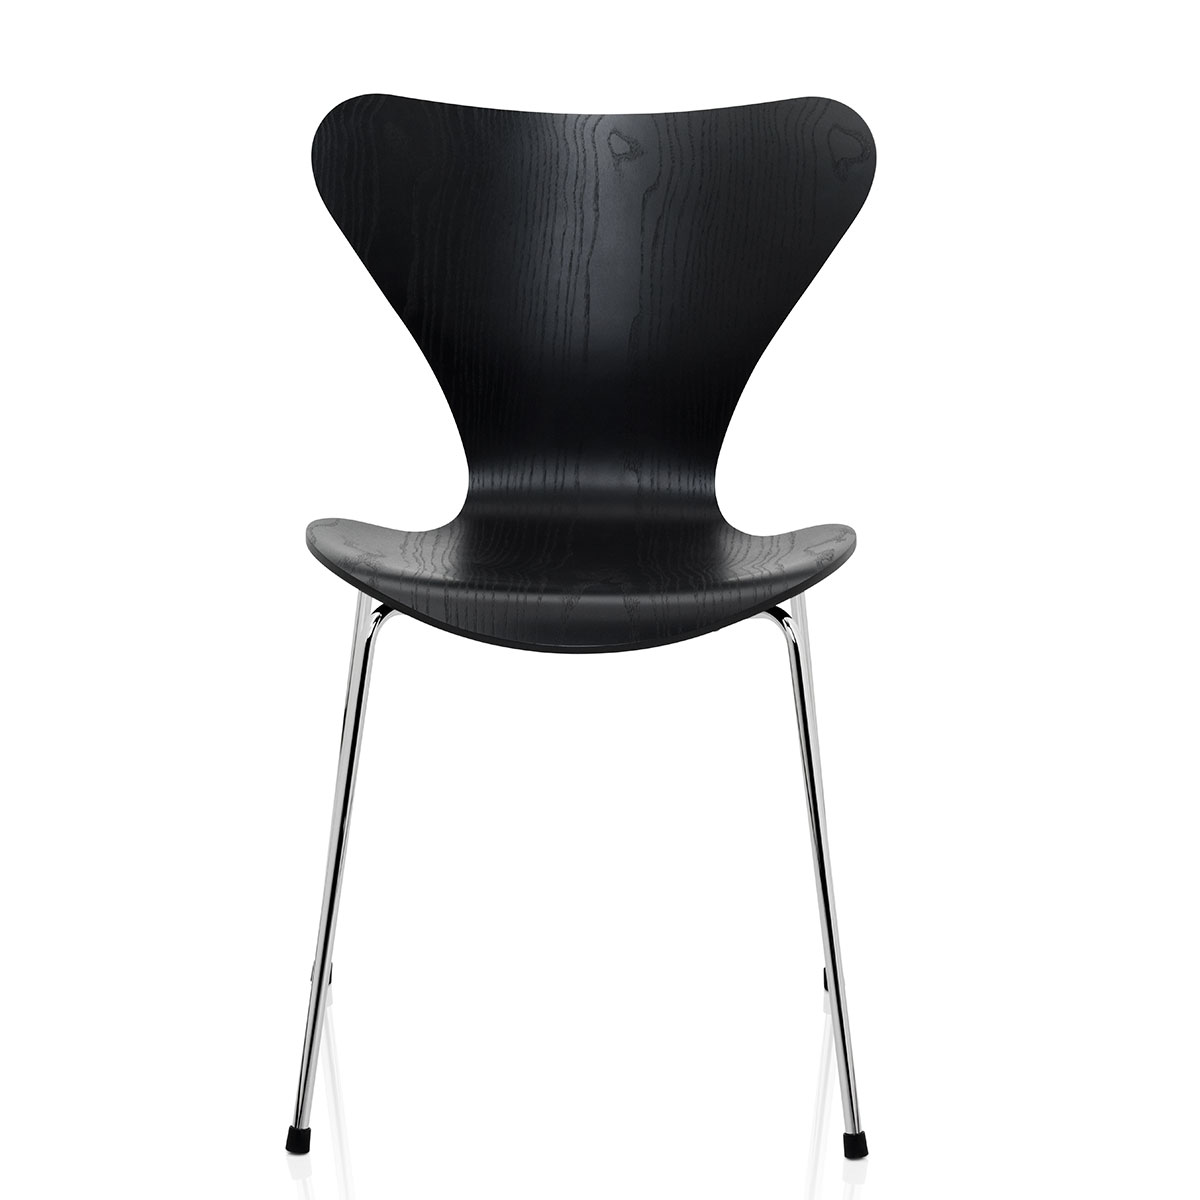 fritz hansen series 7 3107 butterfly chair door arne jacobsen design oostende. Black Bedroom Furniture Sets. Home Design Ideas